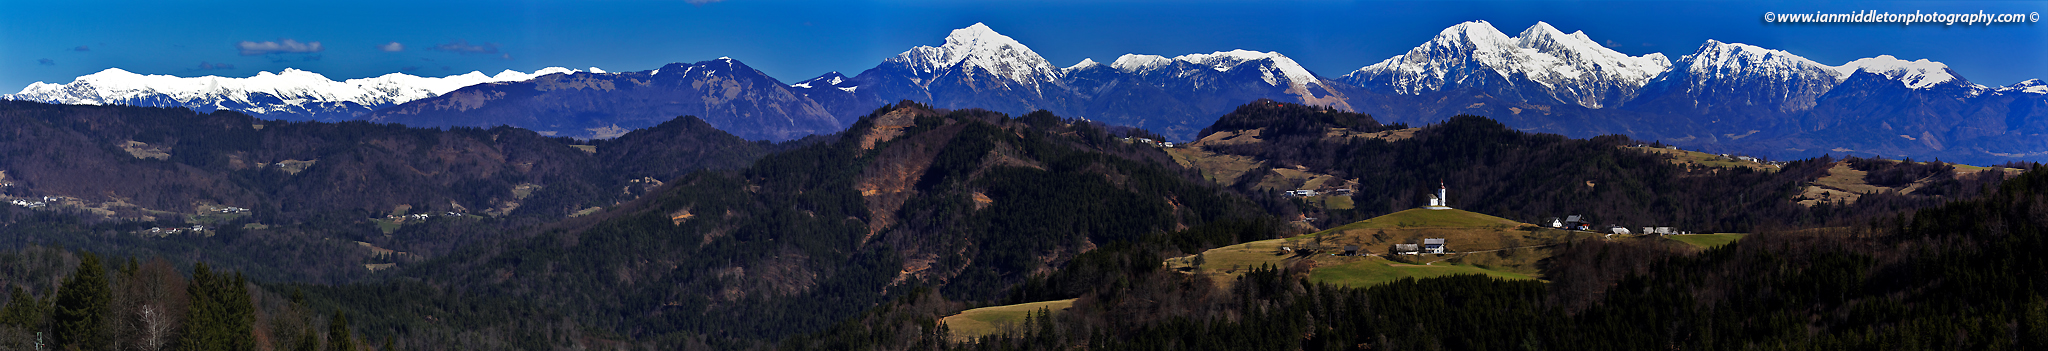 View across to Sveti Tomaz nad Praprotnim (church of Saint Thomas) in the Skofja Loka hills with the snowcapped Kamnik Alps in the background, Slovenia.